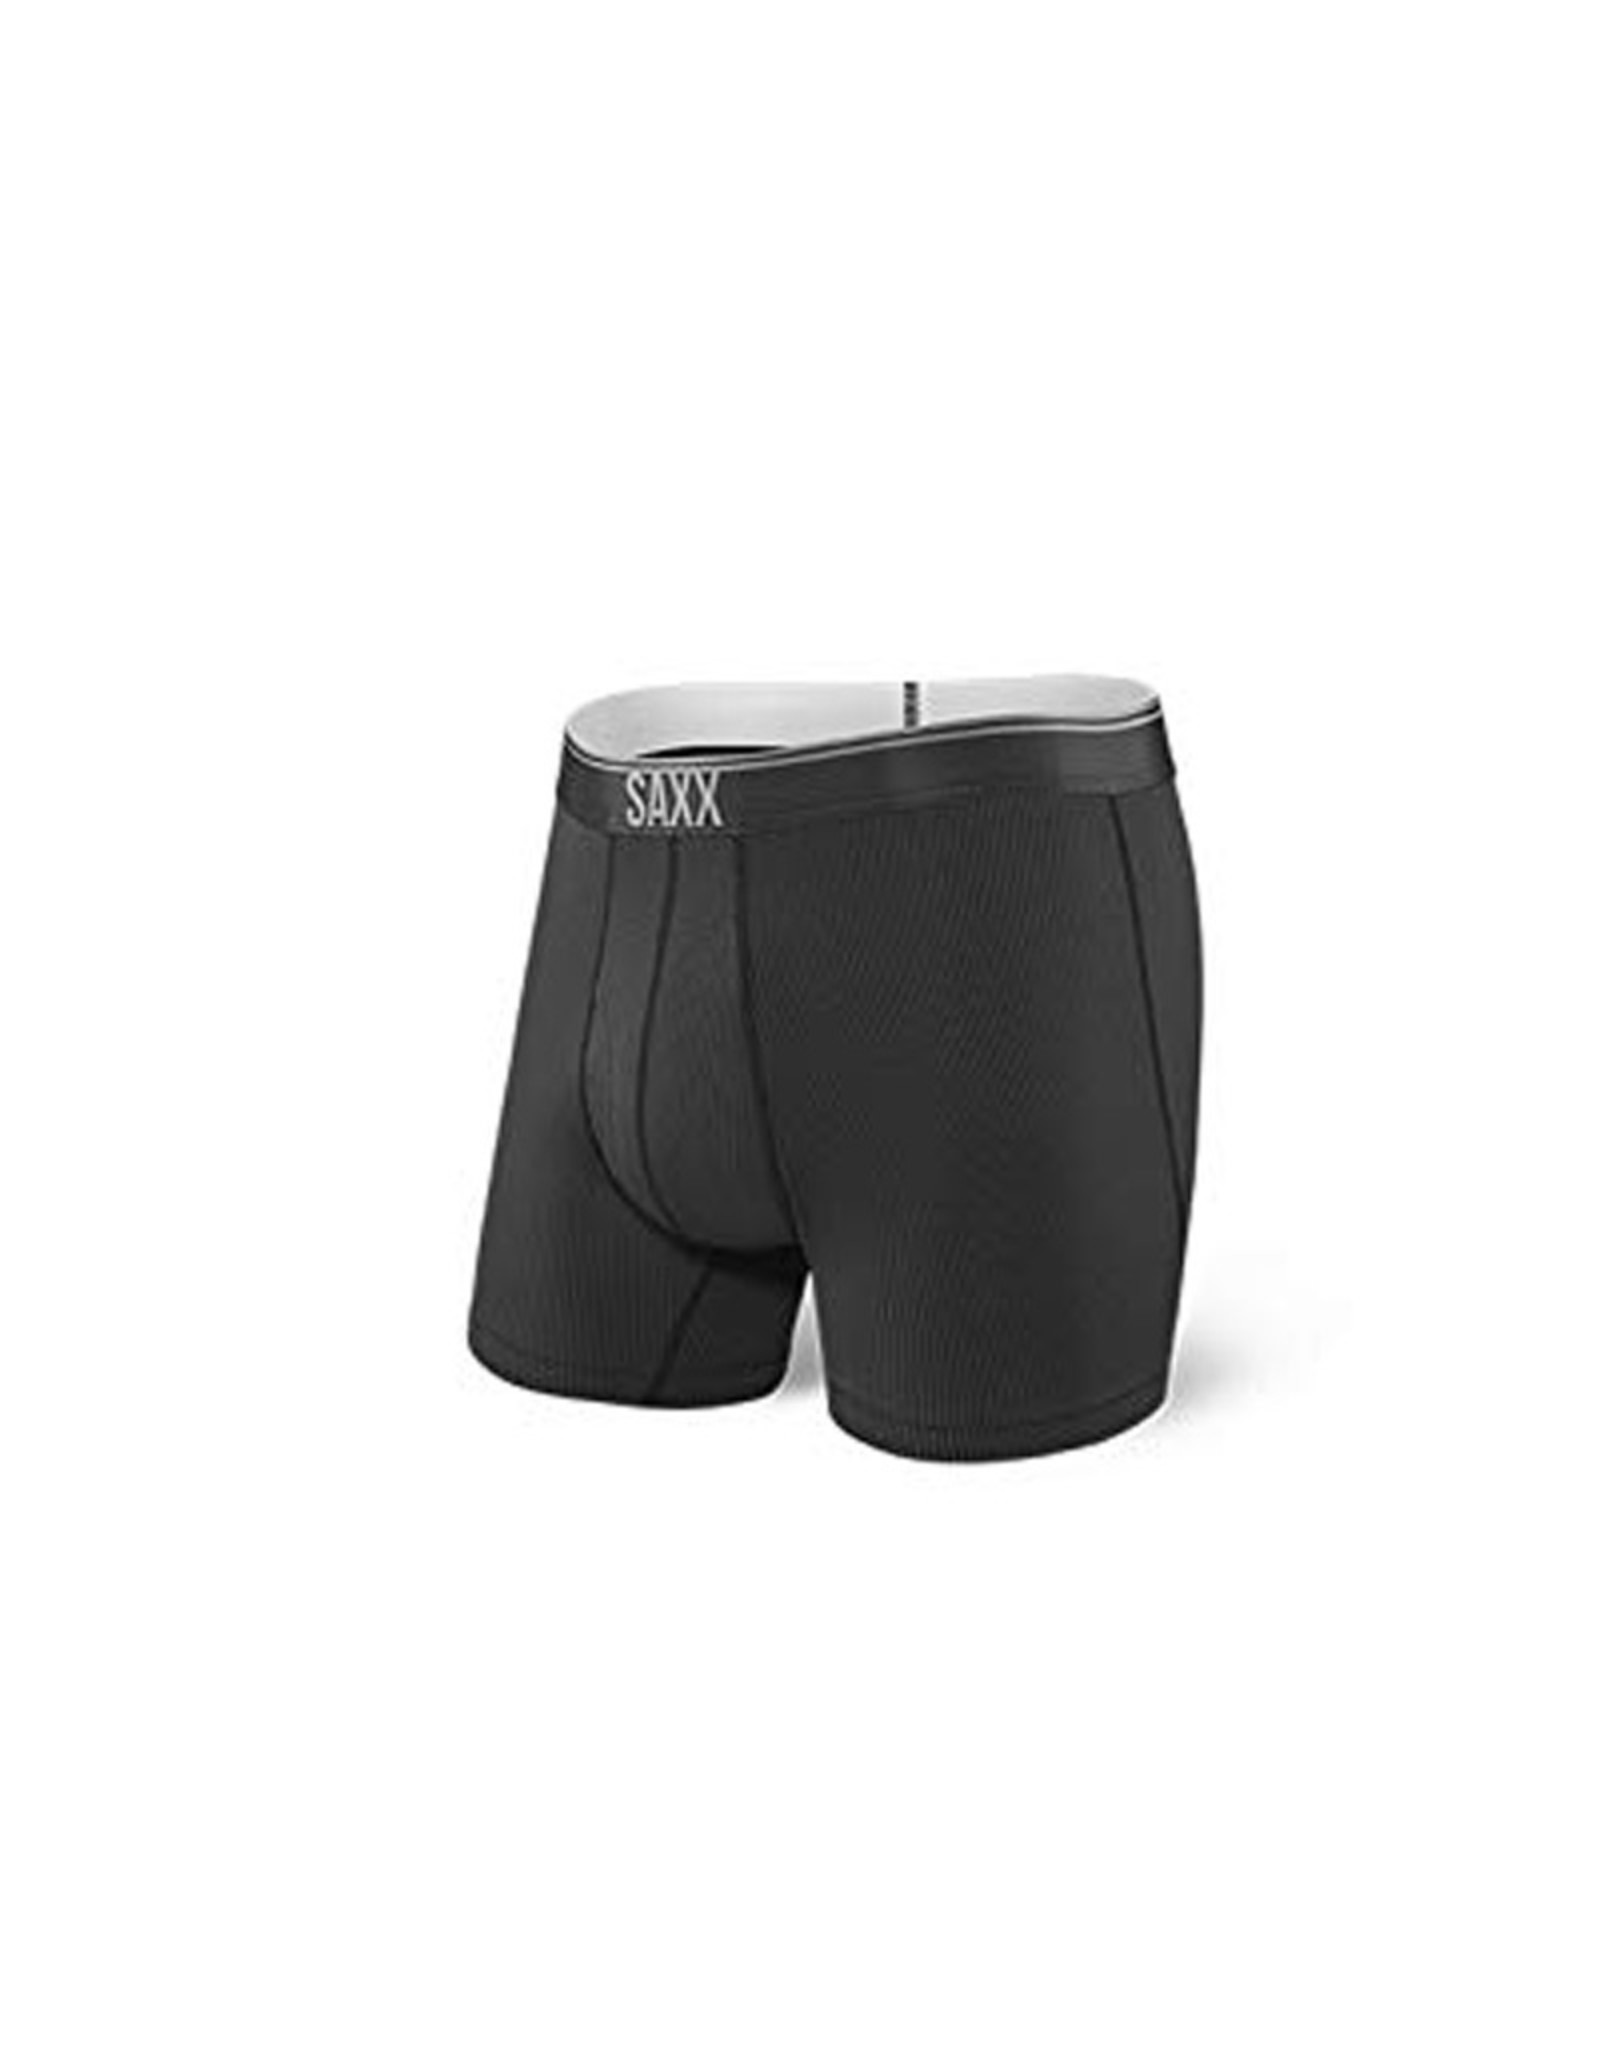 SAXX QUEST 2.0 BOXER W/ FLY